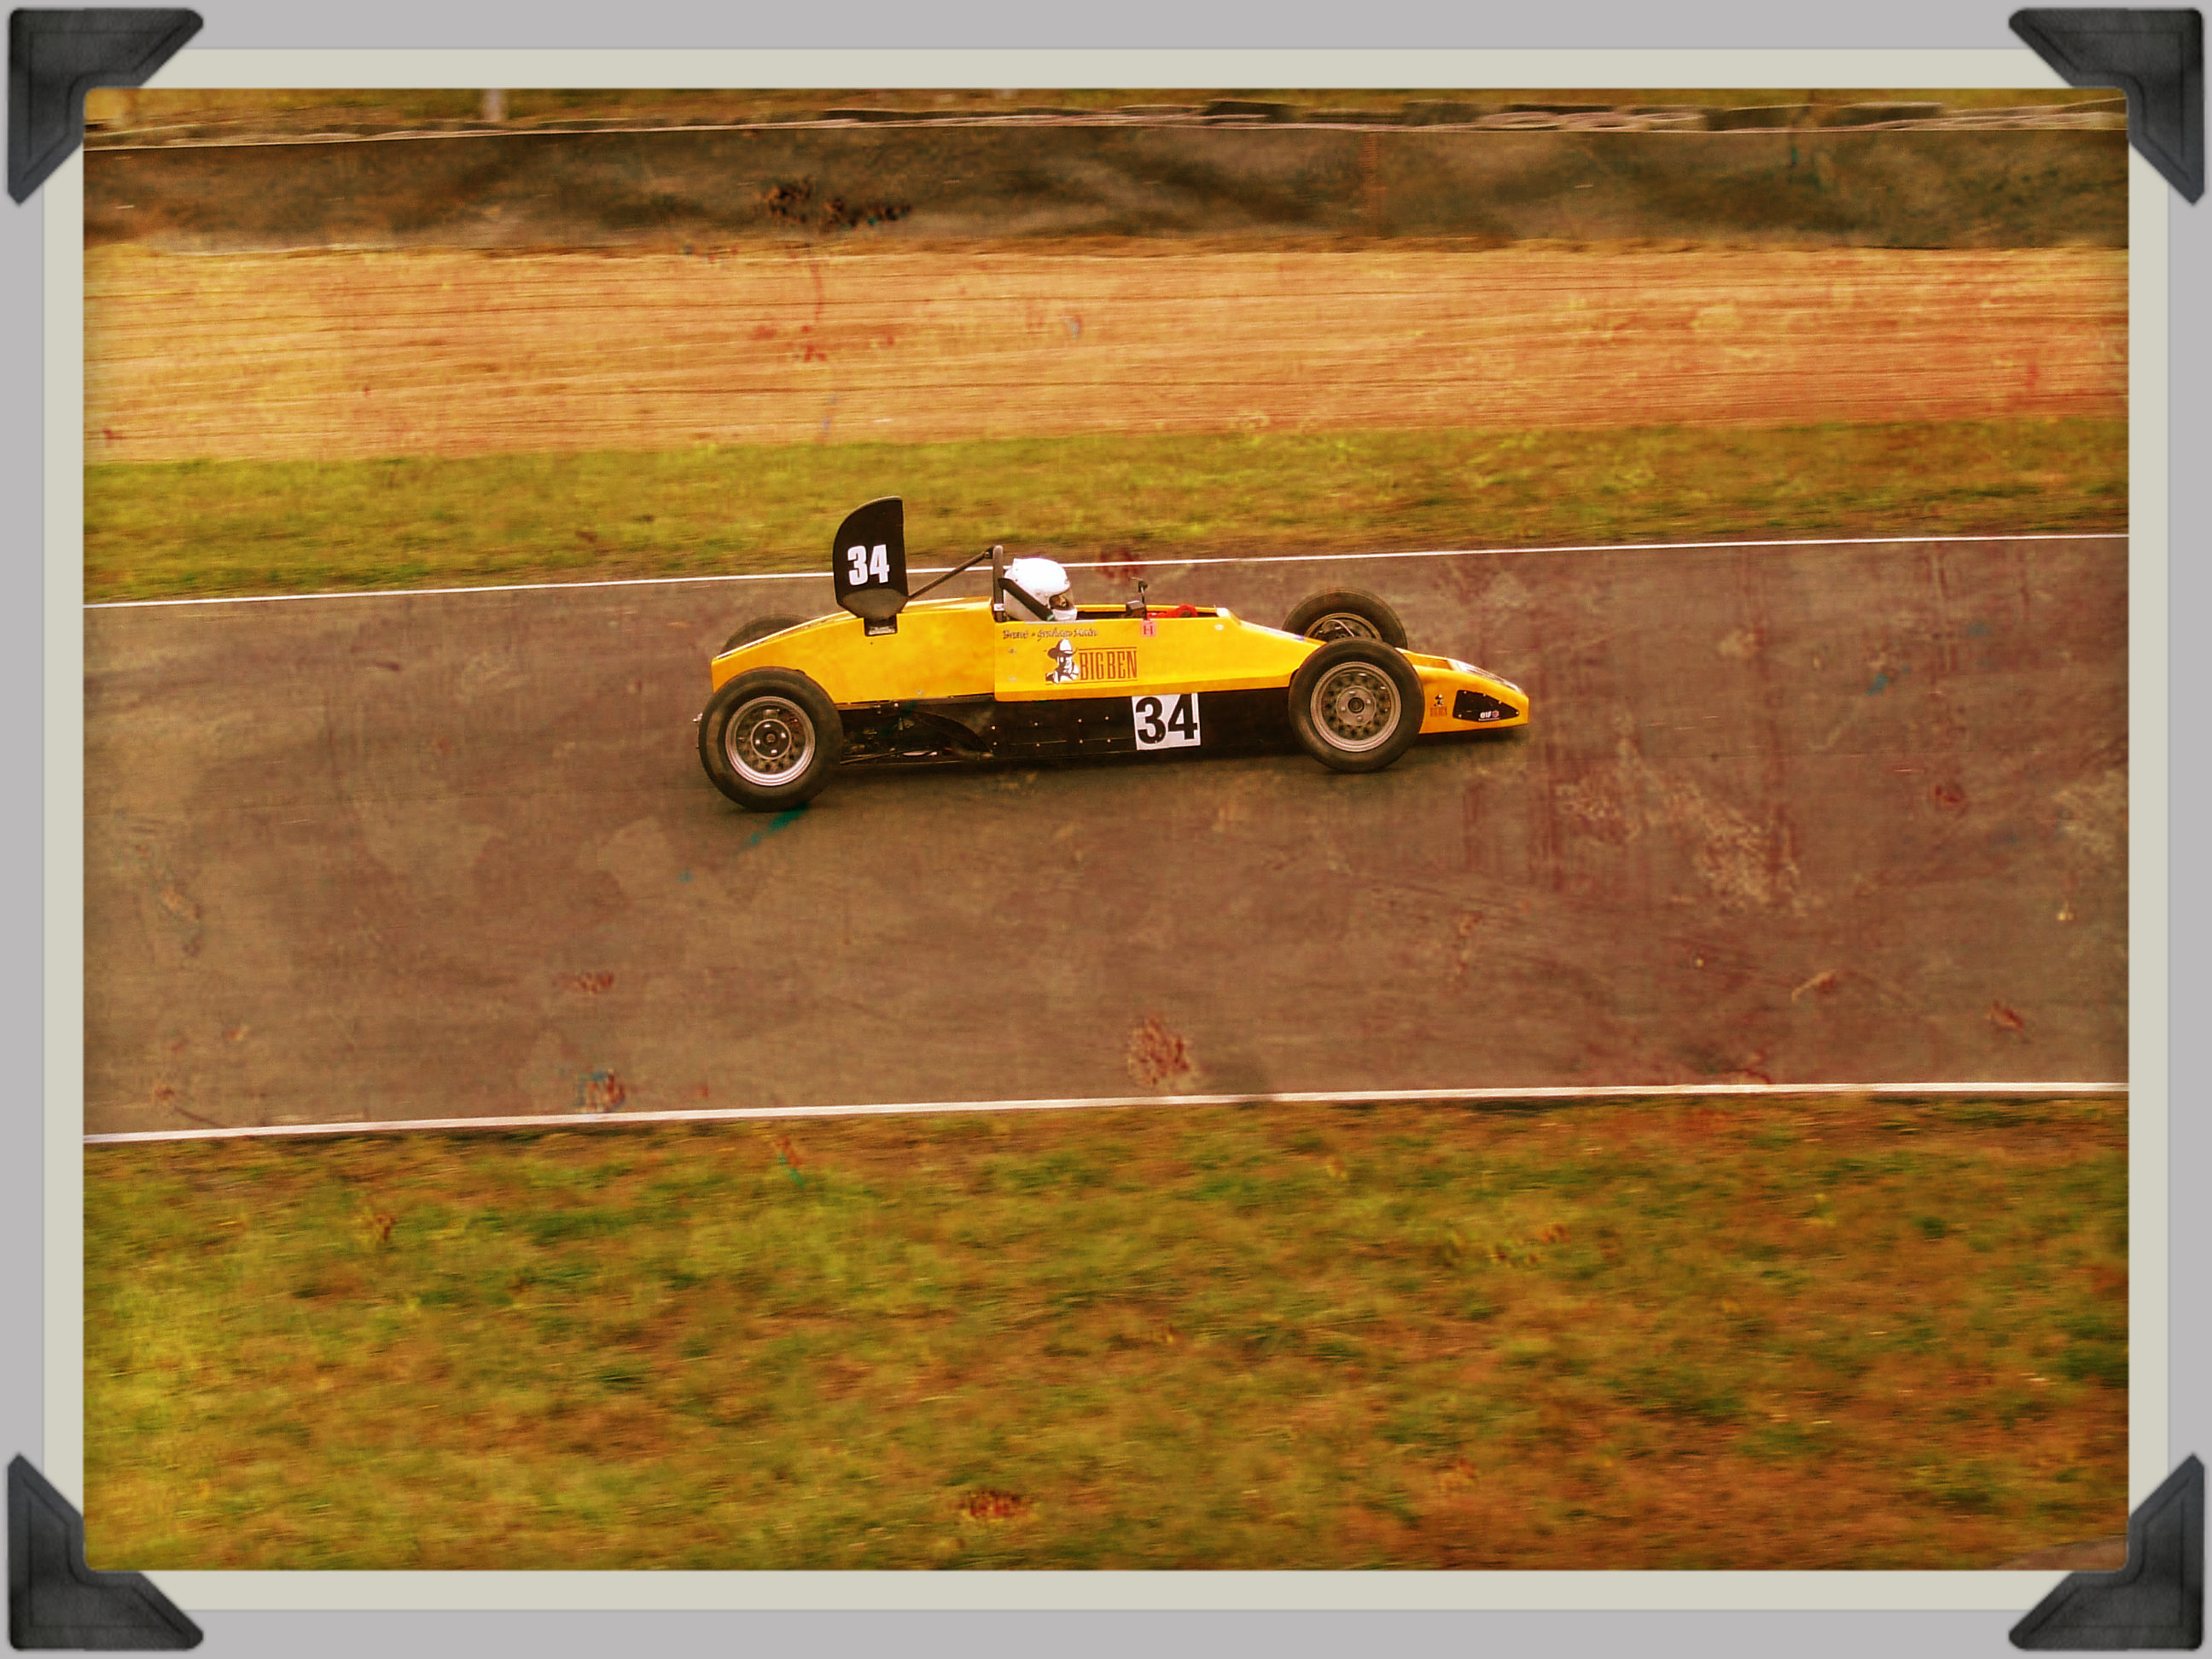 For Sale (Cars, Equipment, etc) - Historic Formula Ford Racing